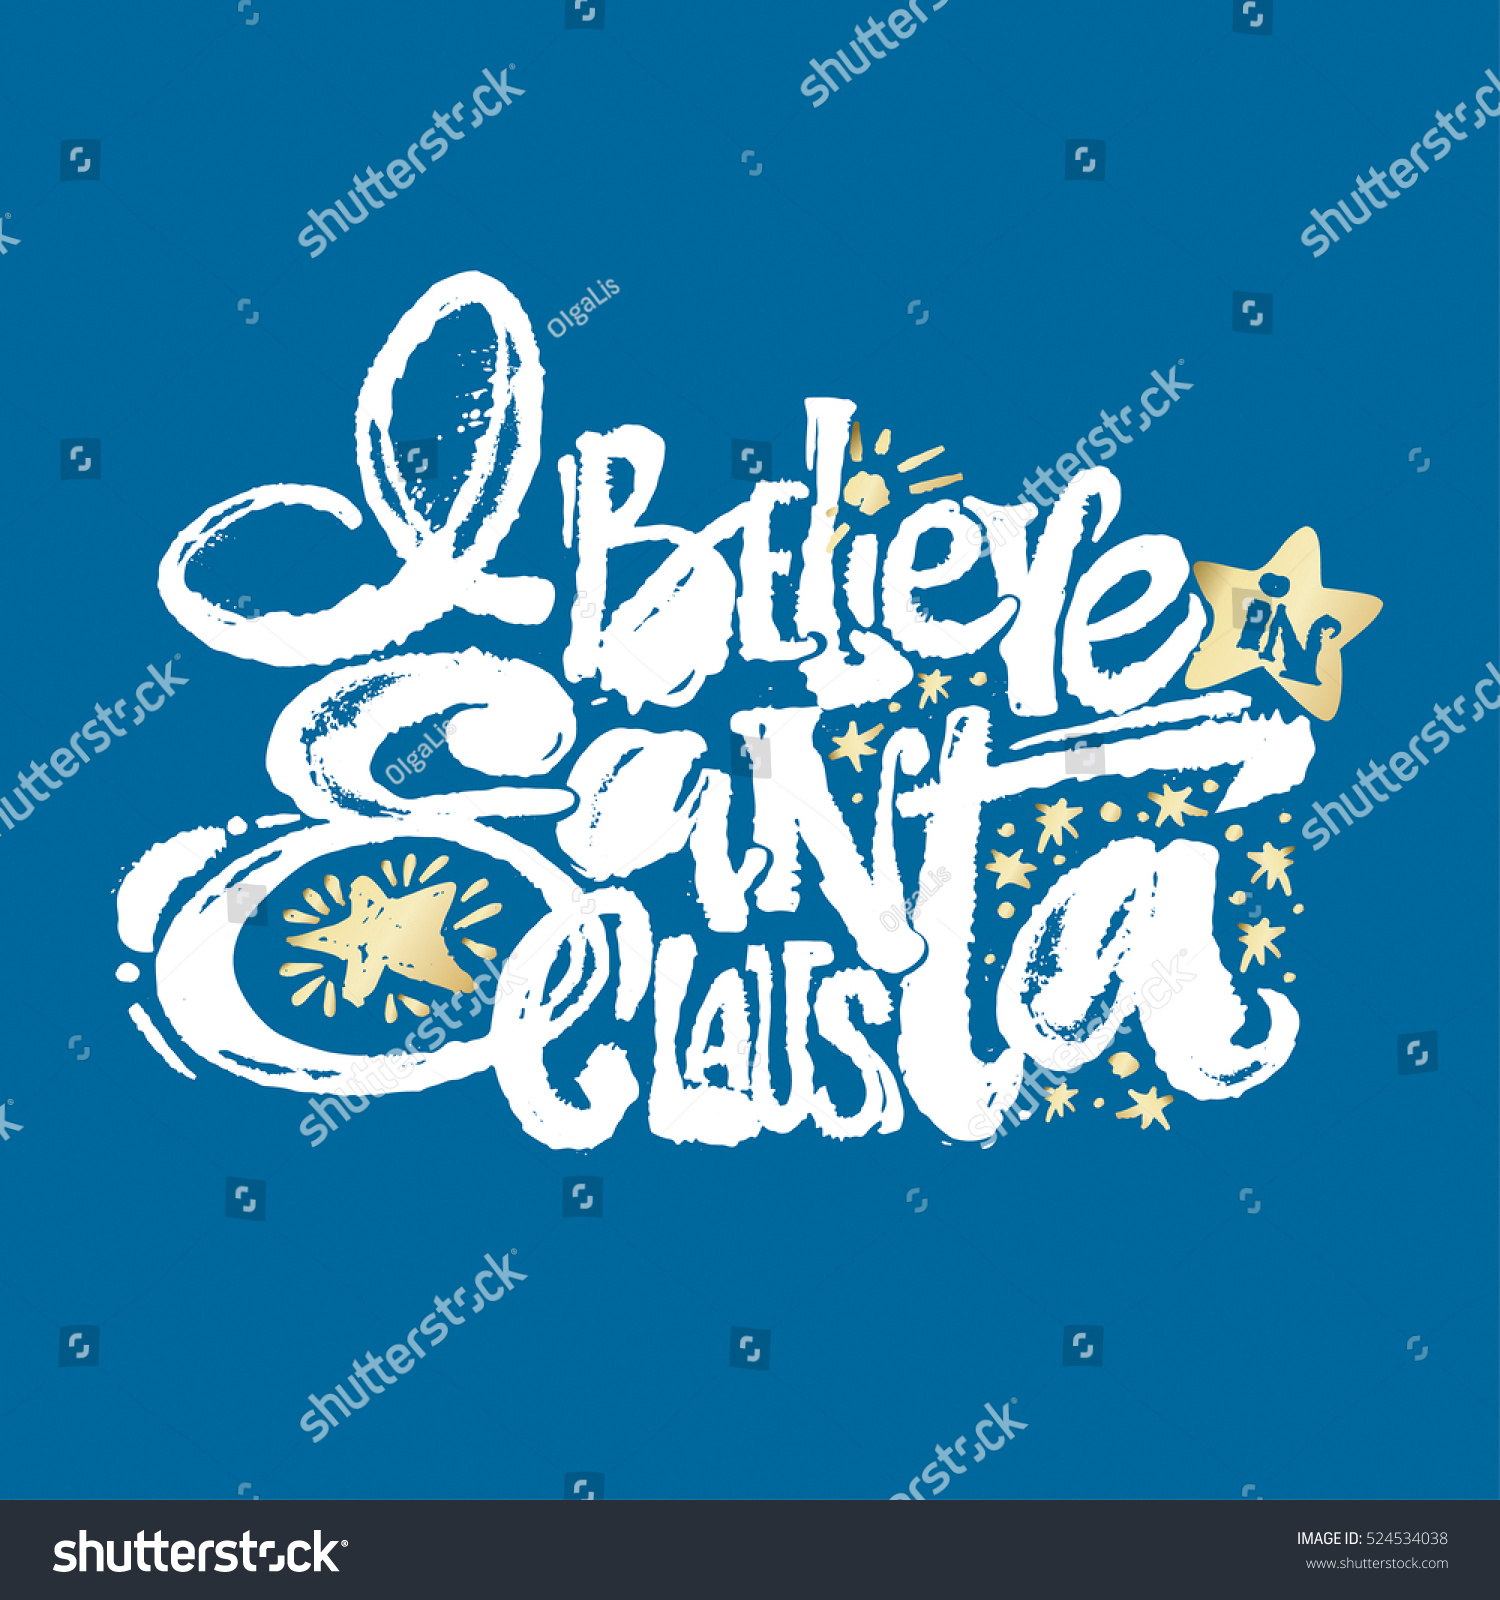 Believe Santa Claus Hand Lettering Banner Stock Vector (Royalty Free ...